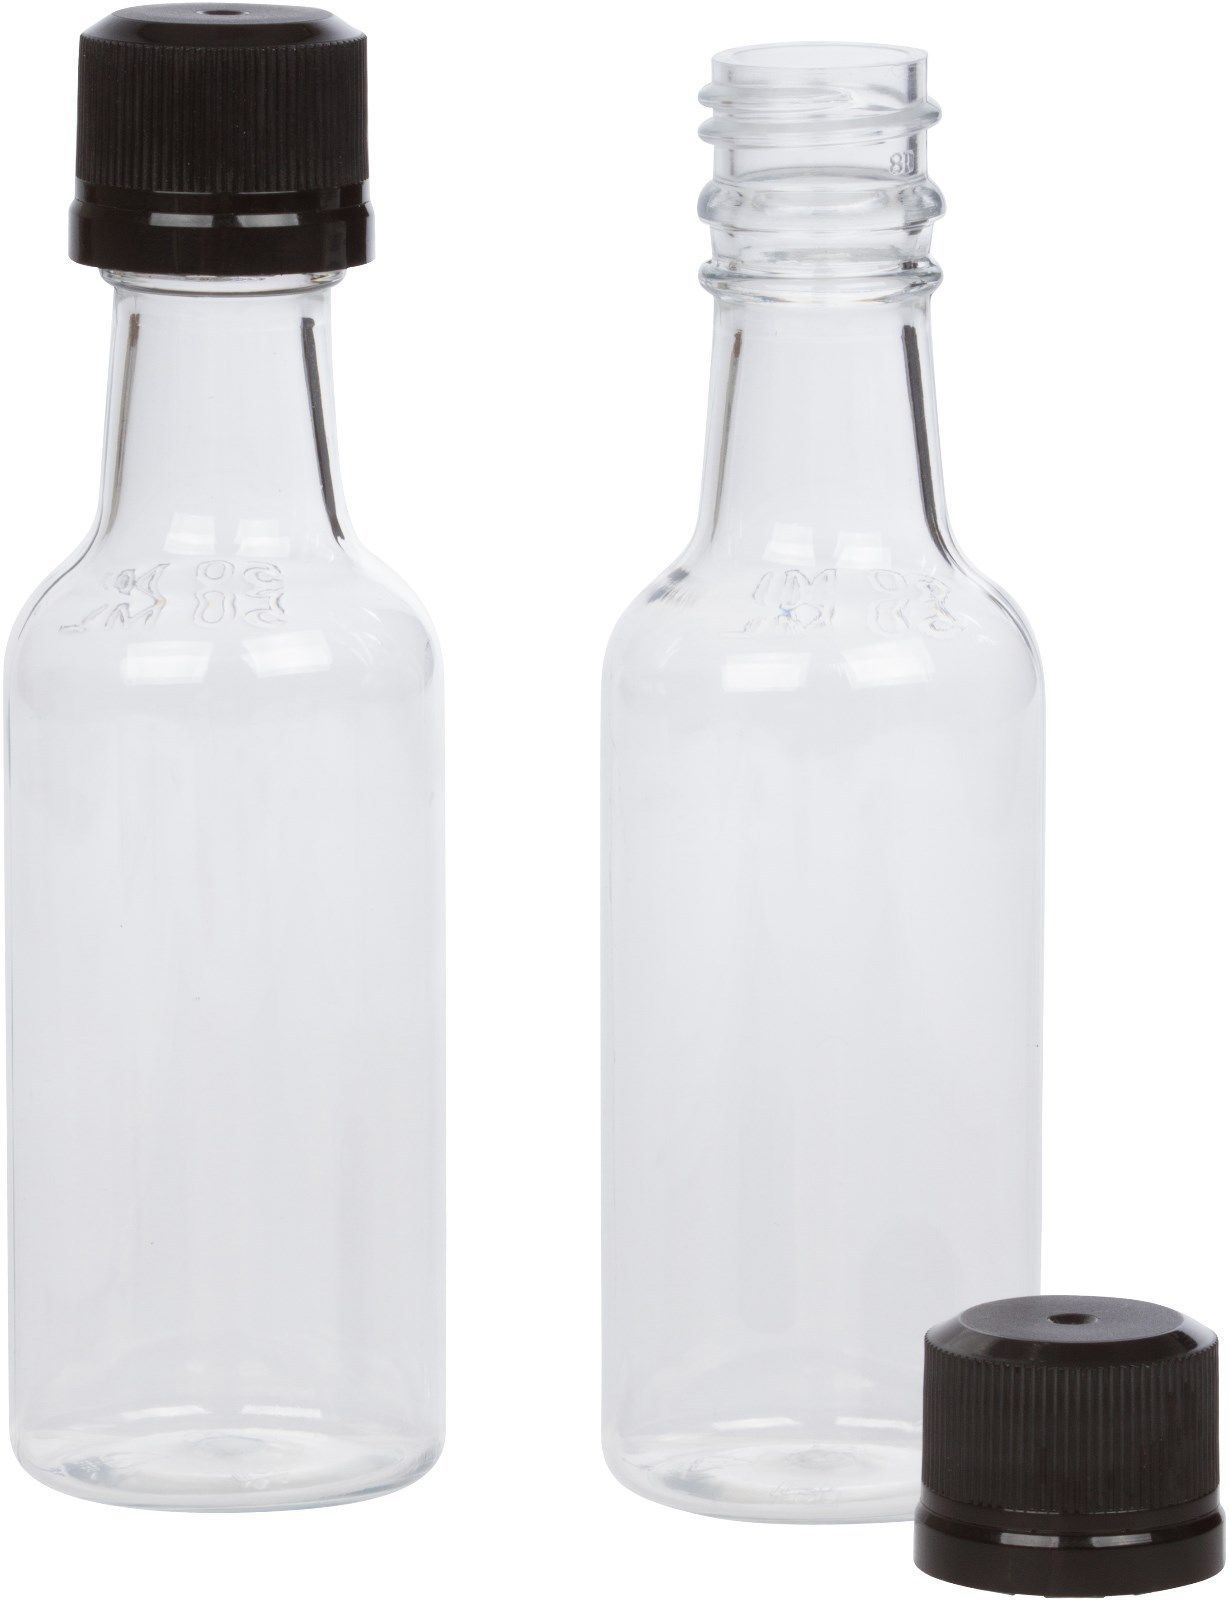 50ml mini empty plastic alcohol liquor bottle shots for What to do with empty plastic bottles